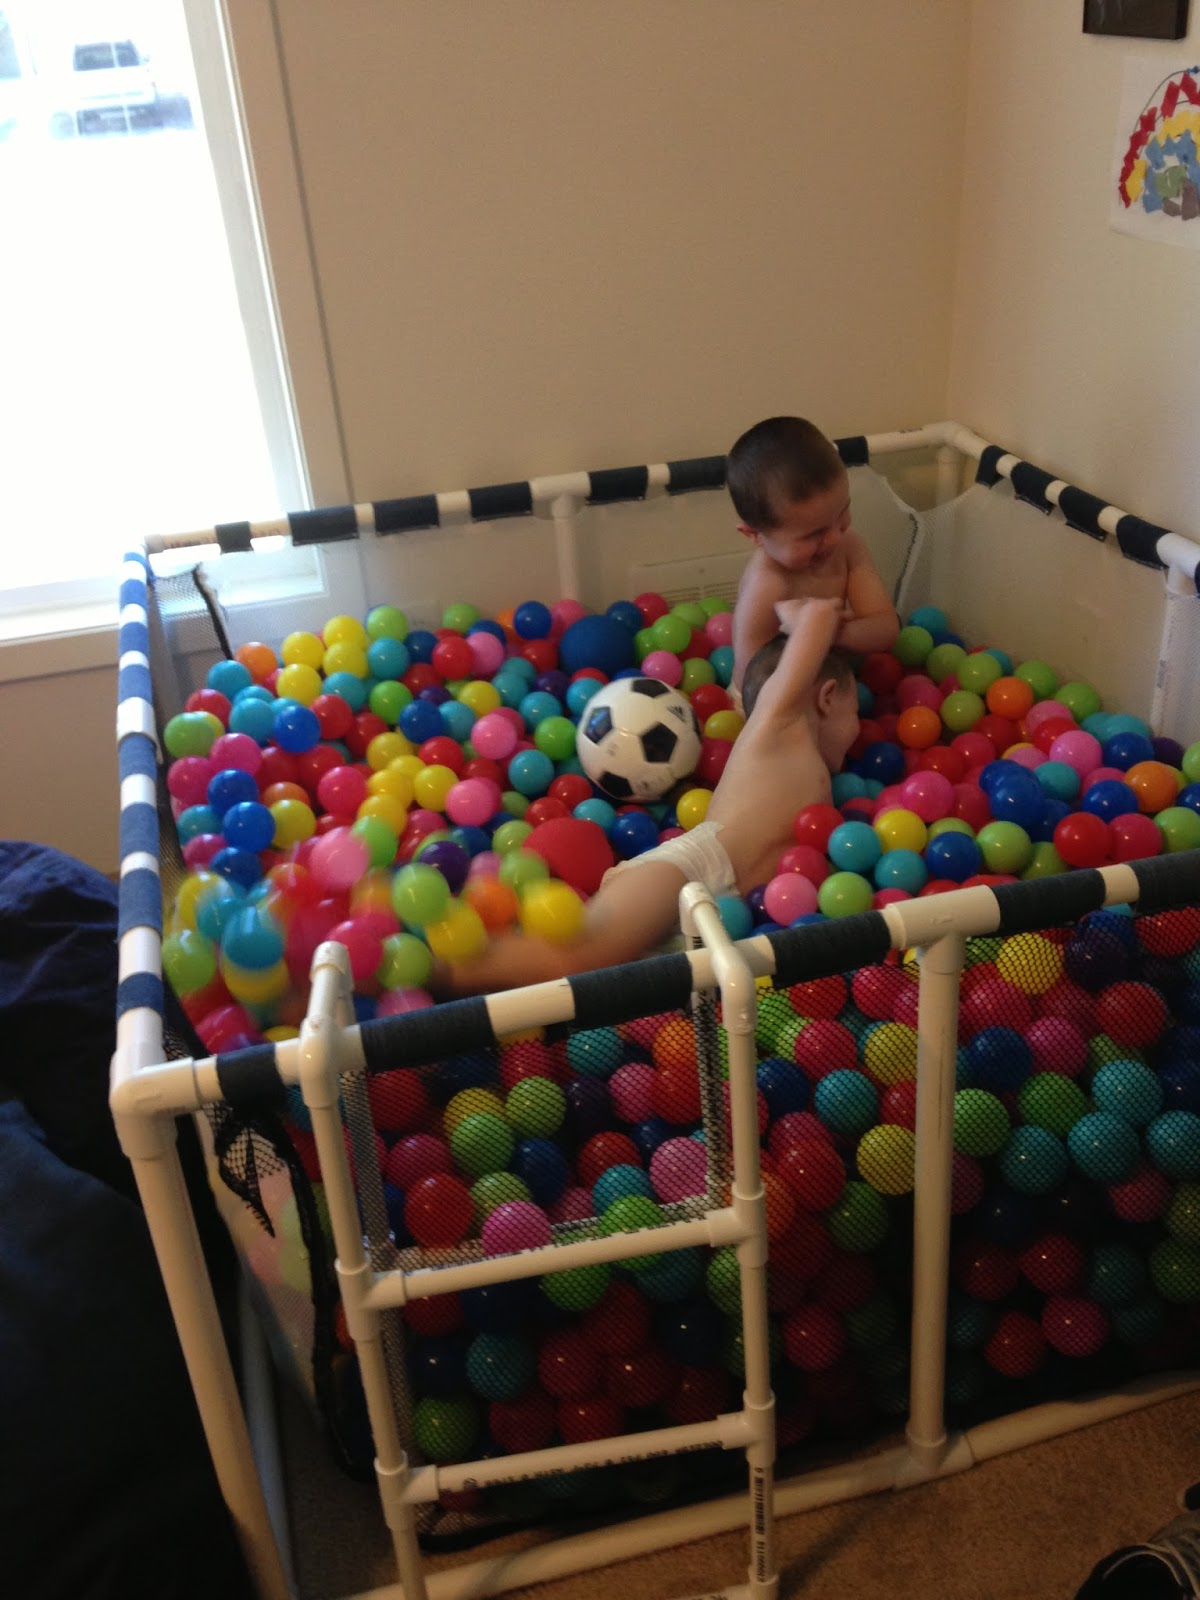 Diy an at home ball pit for any age wow amazing for Build dream home online for fun